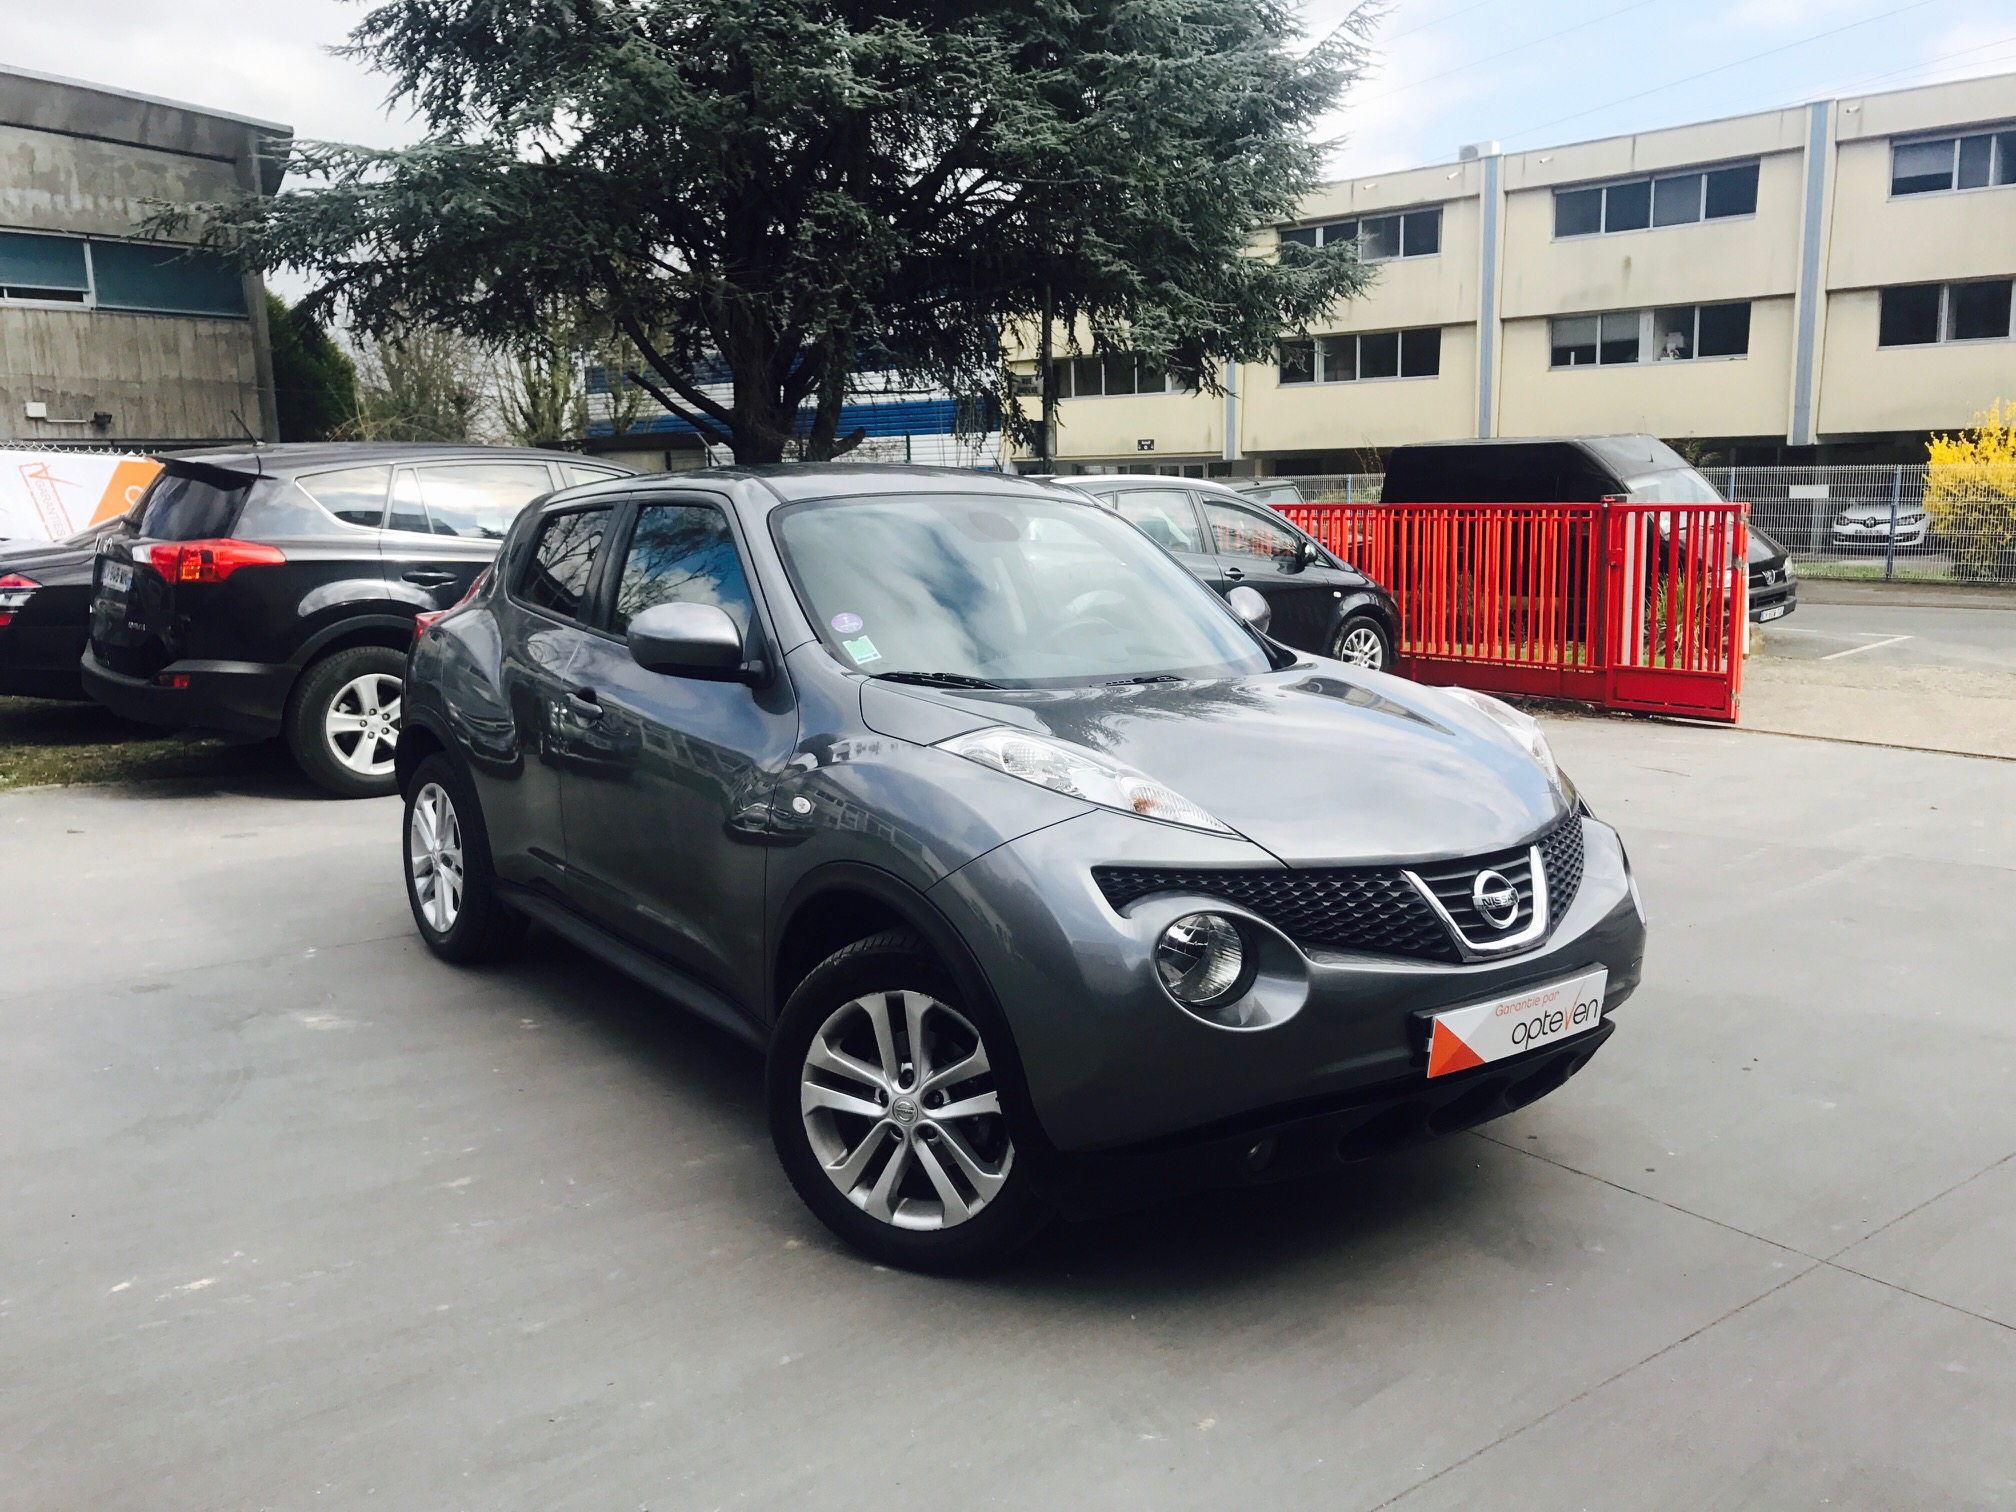 voiture nissan juke 117 tekna cvt occasion essence 2013 48900 km 13990 neuilly. Black Bedroom Furniture Sets. Home Design Ideas